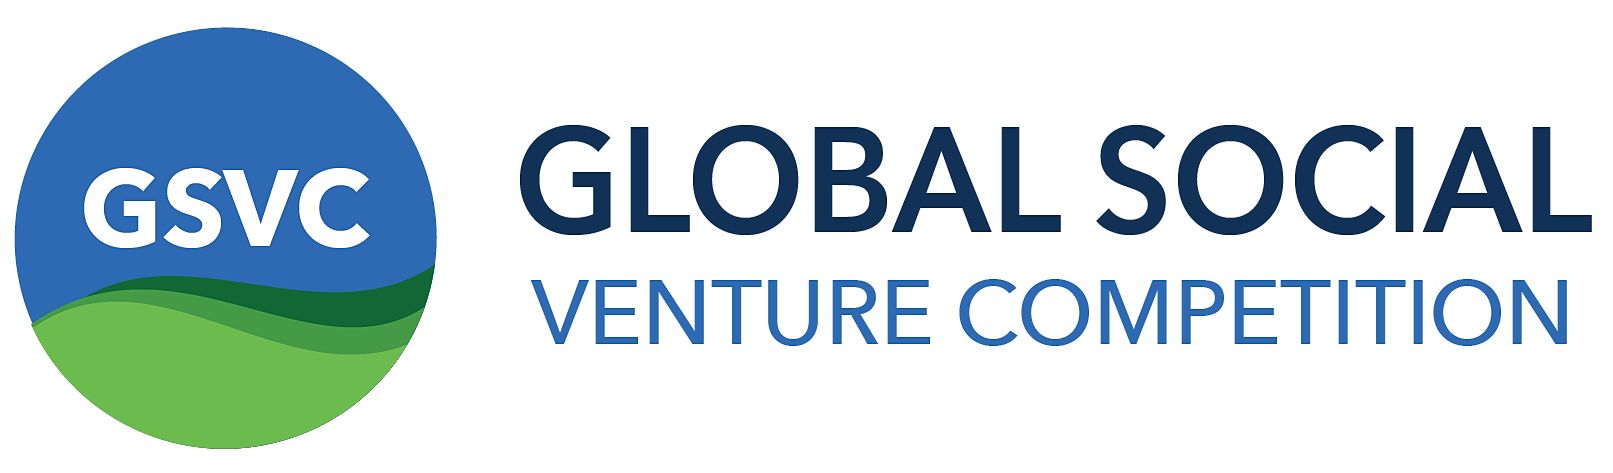 global societies The global hr e-newsletter mirrors shrm's focus on international hr management issues, as well as development in global employment laws and best practices subscribe you have successfully saved.